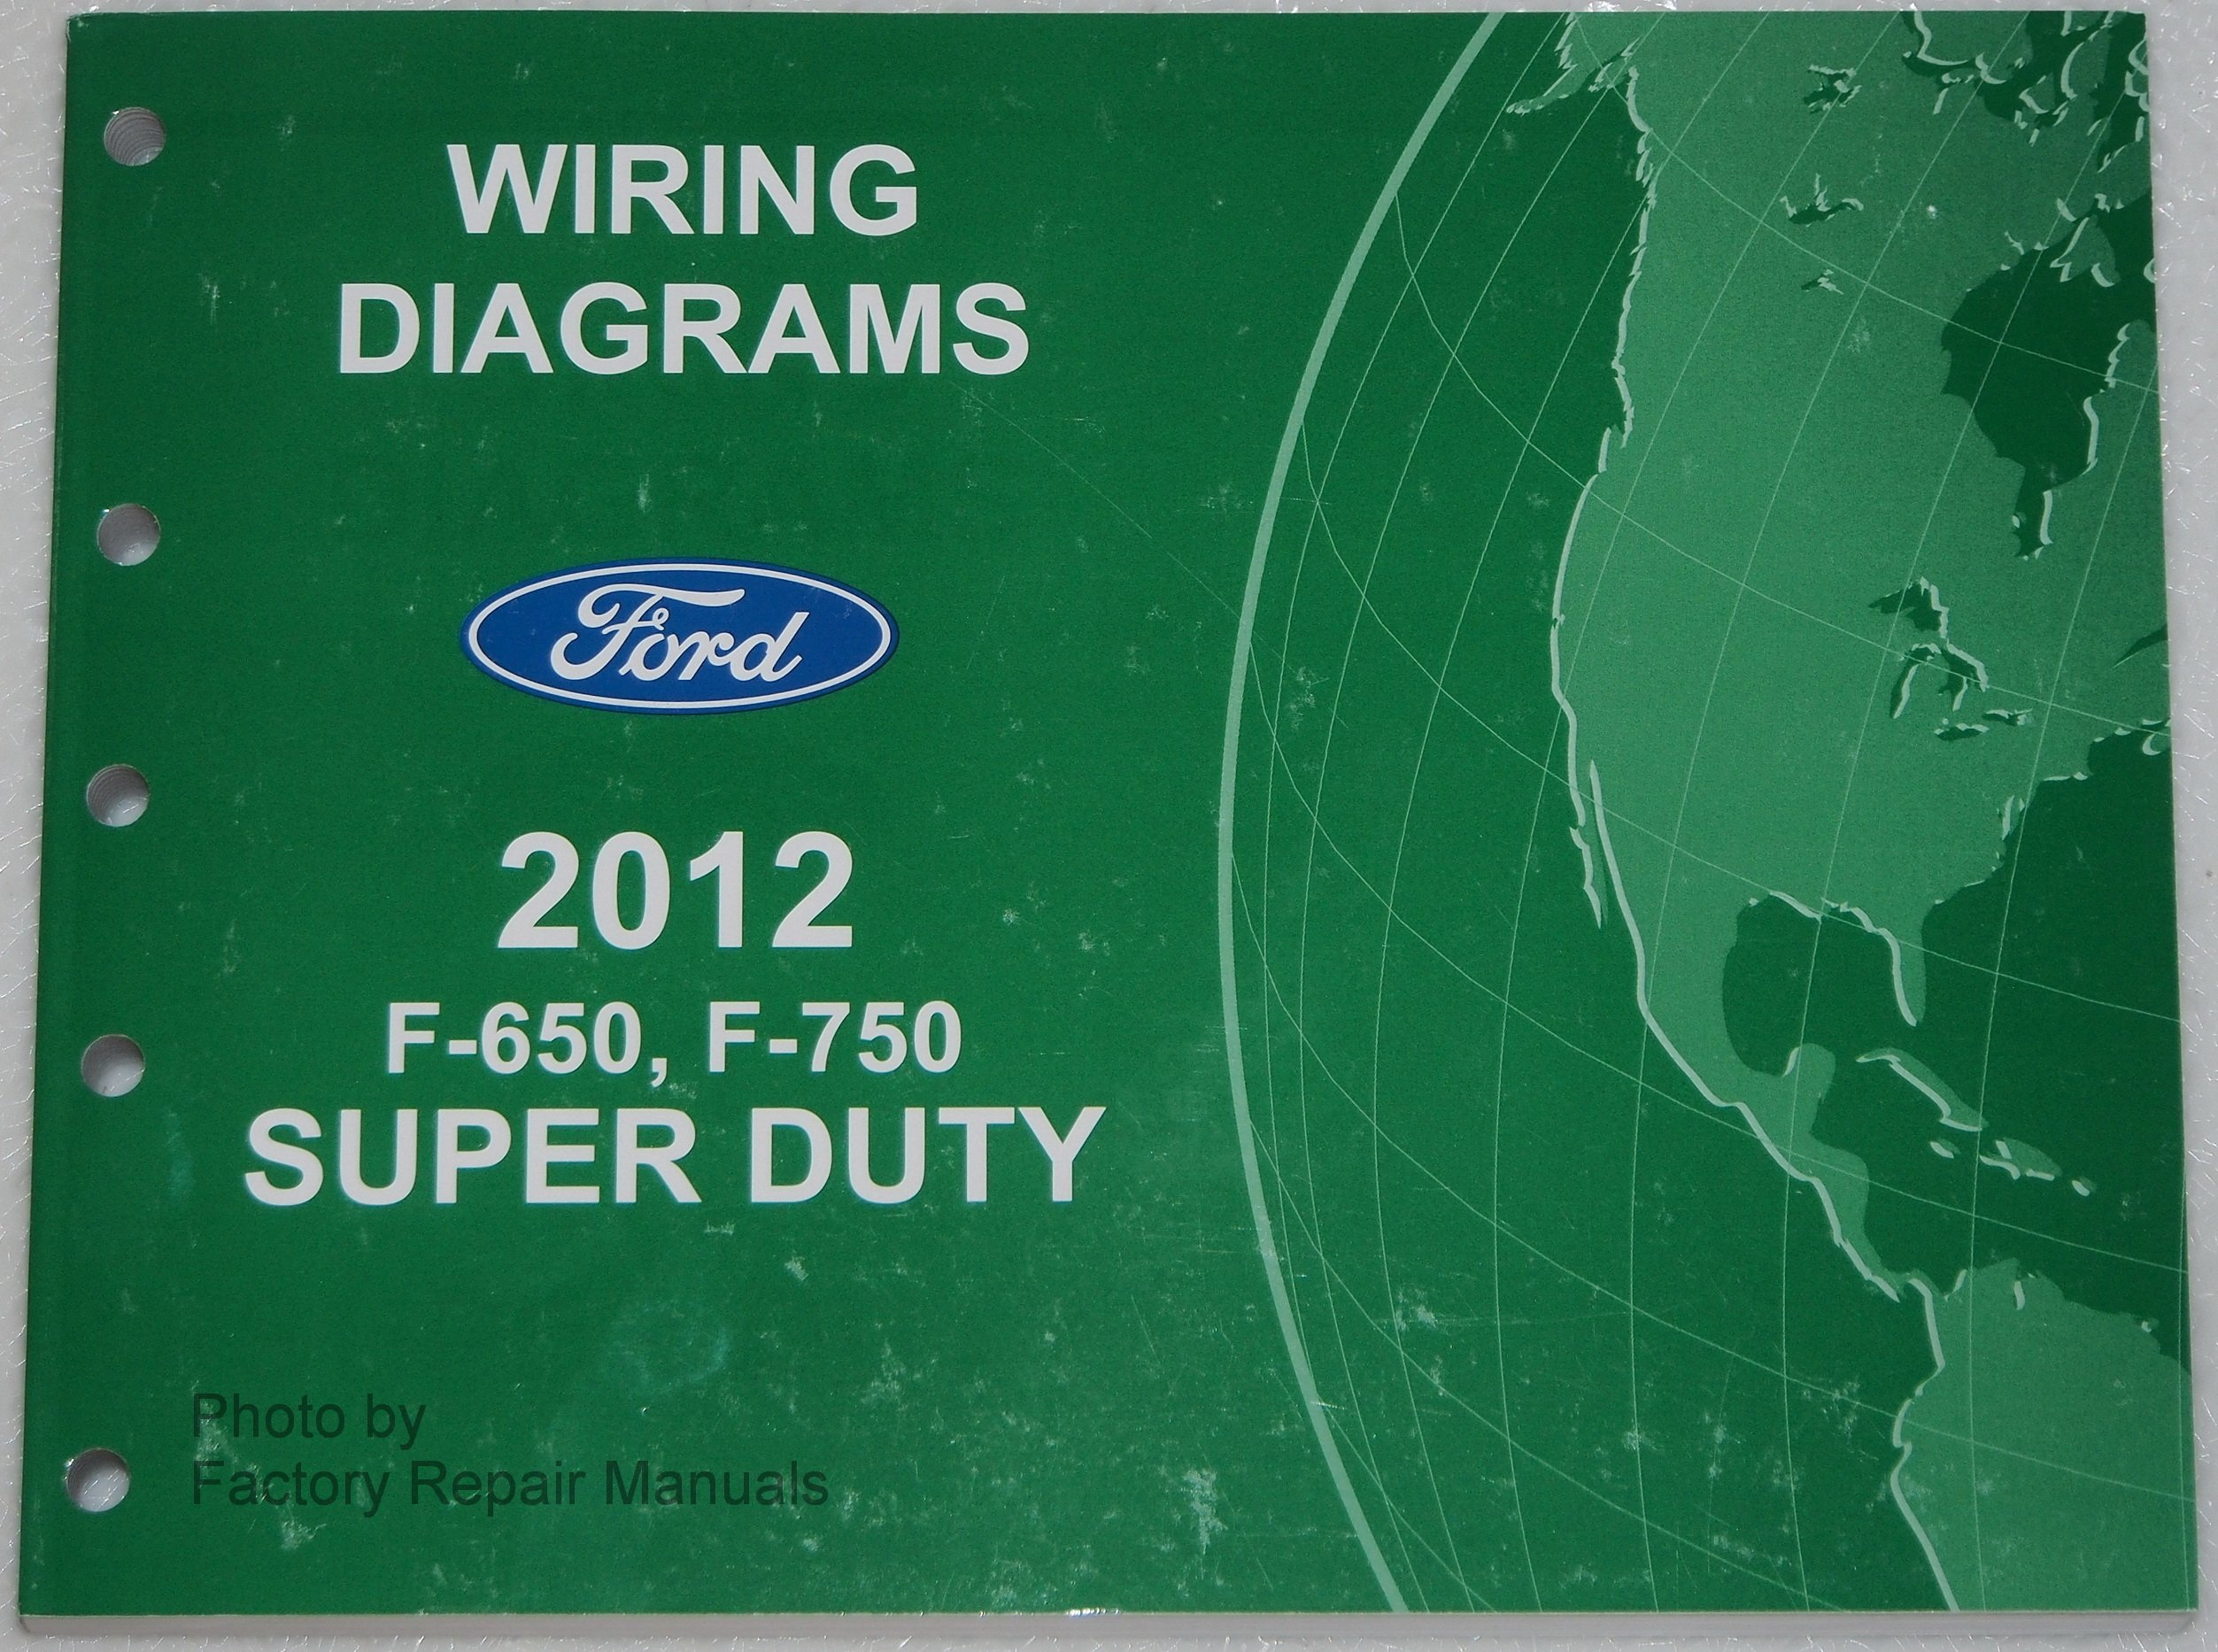 91KkFIScY%2BL 2012 f650 f750 wiring diagram ford motor company amazon com books 2013 ford wiring diagram at soozxer.org